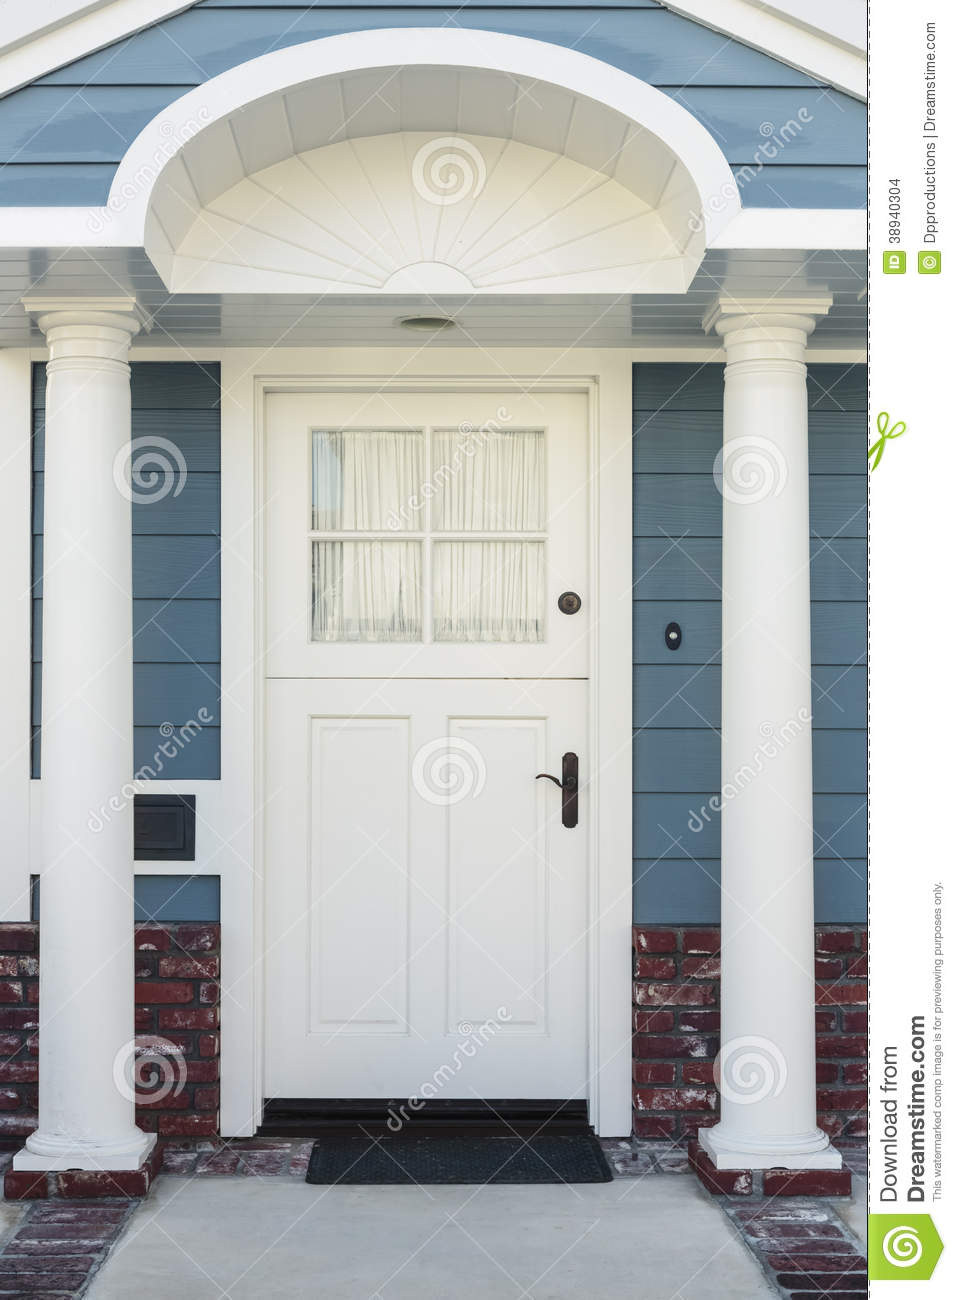 White front door of classical blue and brick home stock for White front door